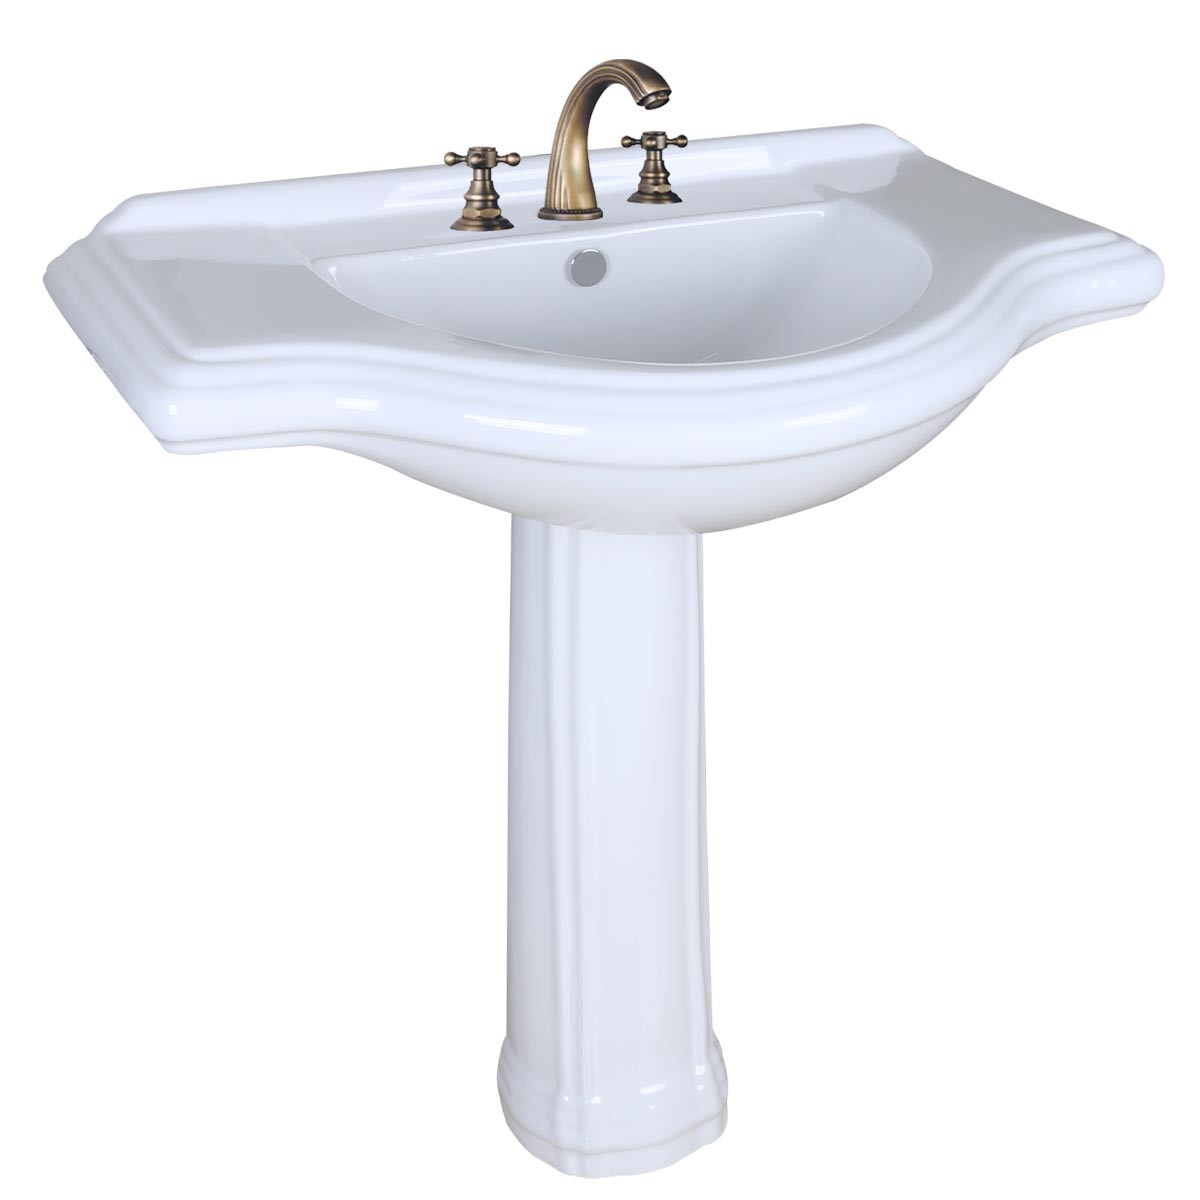 Large pedestal sink bathroom console 8 widespread 34 w for Bath toilet and sink